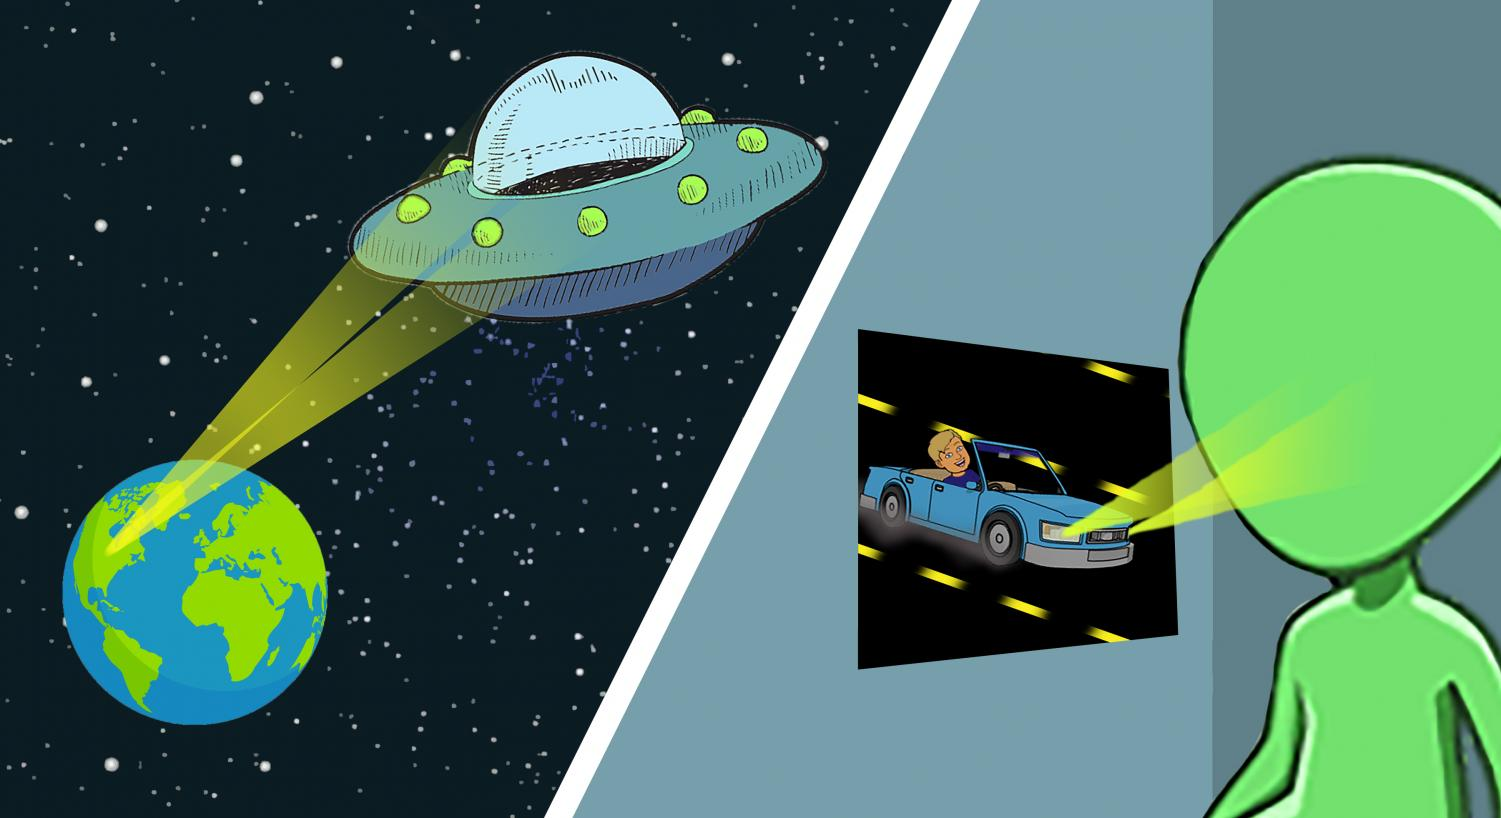 The use of car brights has become an epidemic that is causing alien blindness.